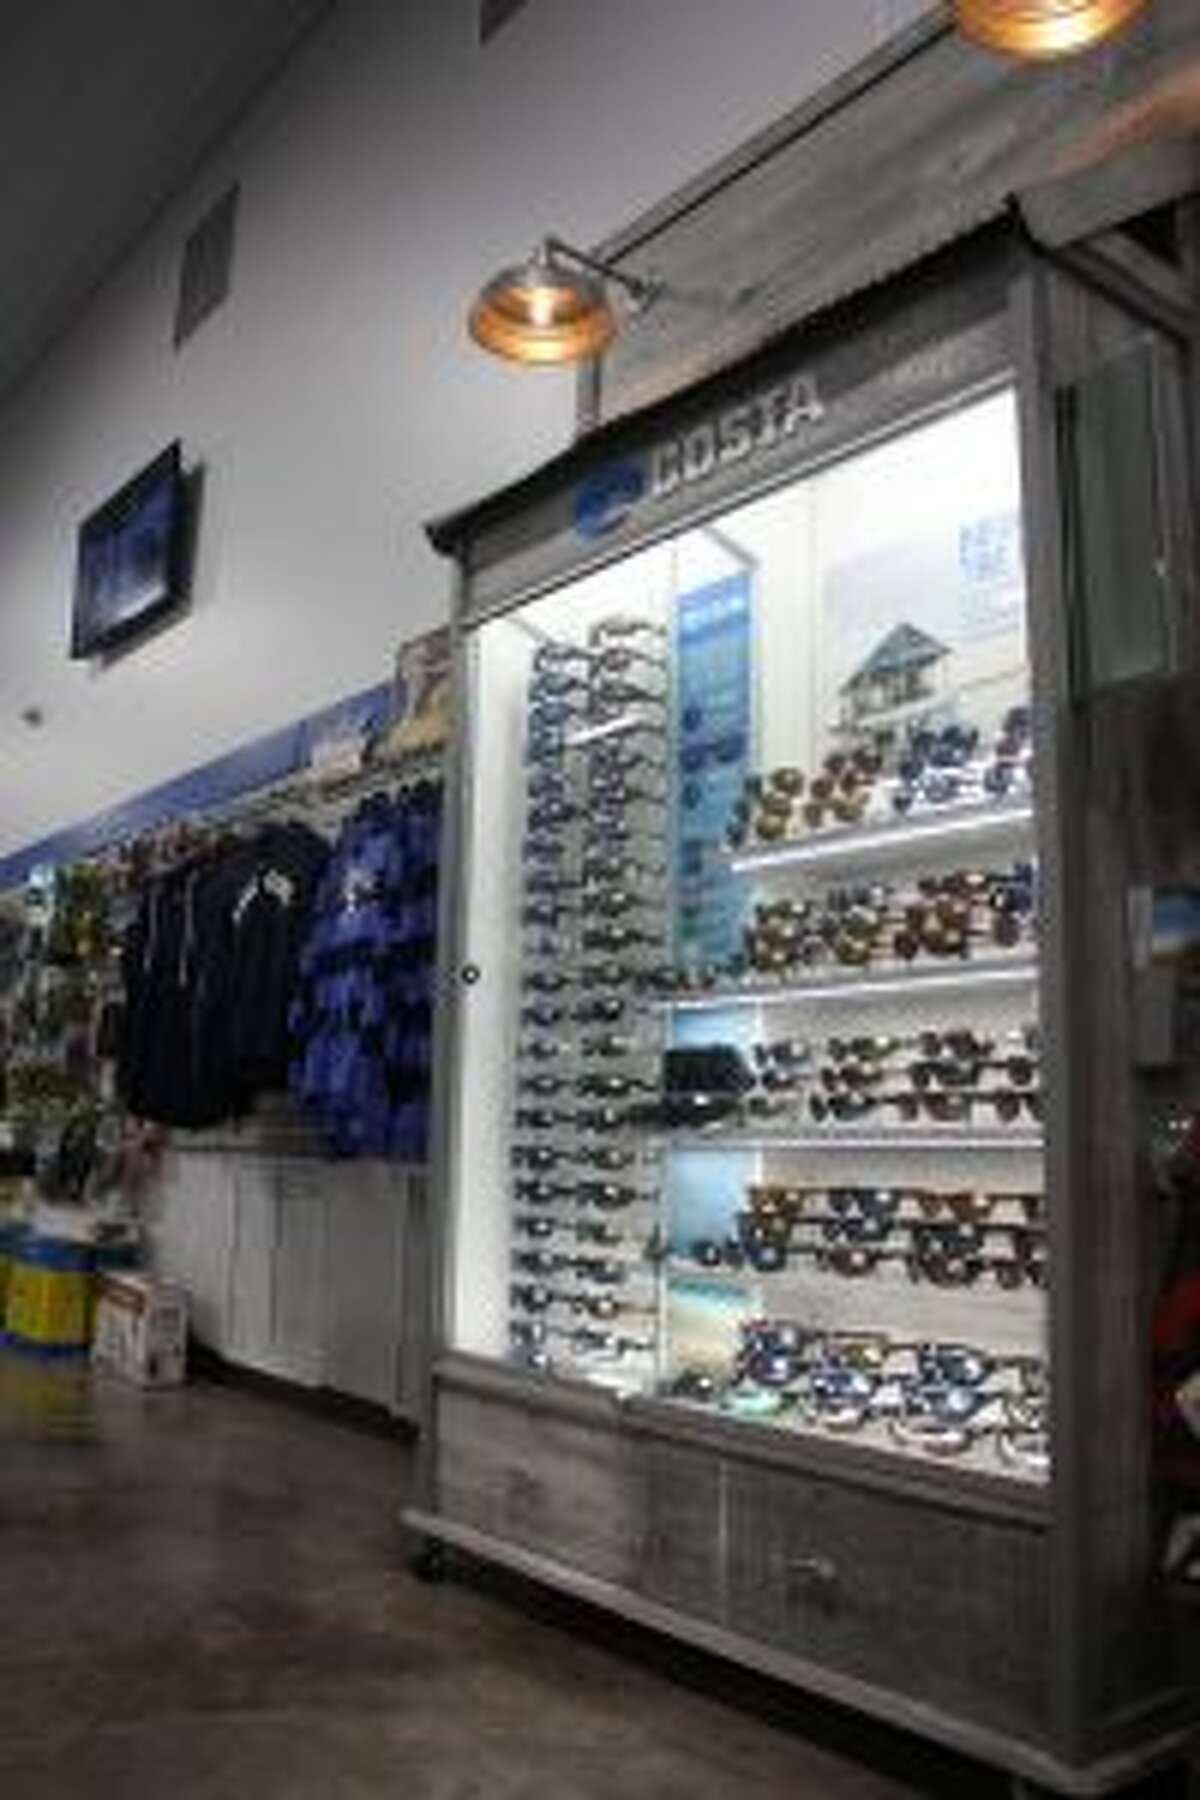 A selection of accessories for sale at Lakeside Motor Sports, including sunglasses and clothing, are pictured Wednesday. (pioneer photo/Tim Rath)